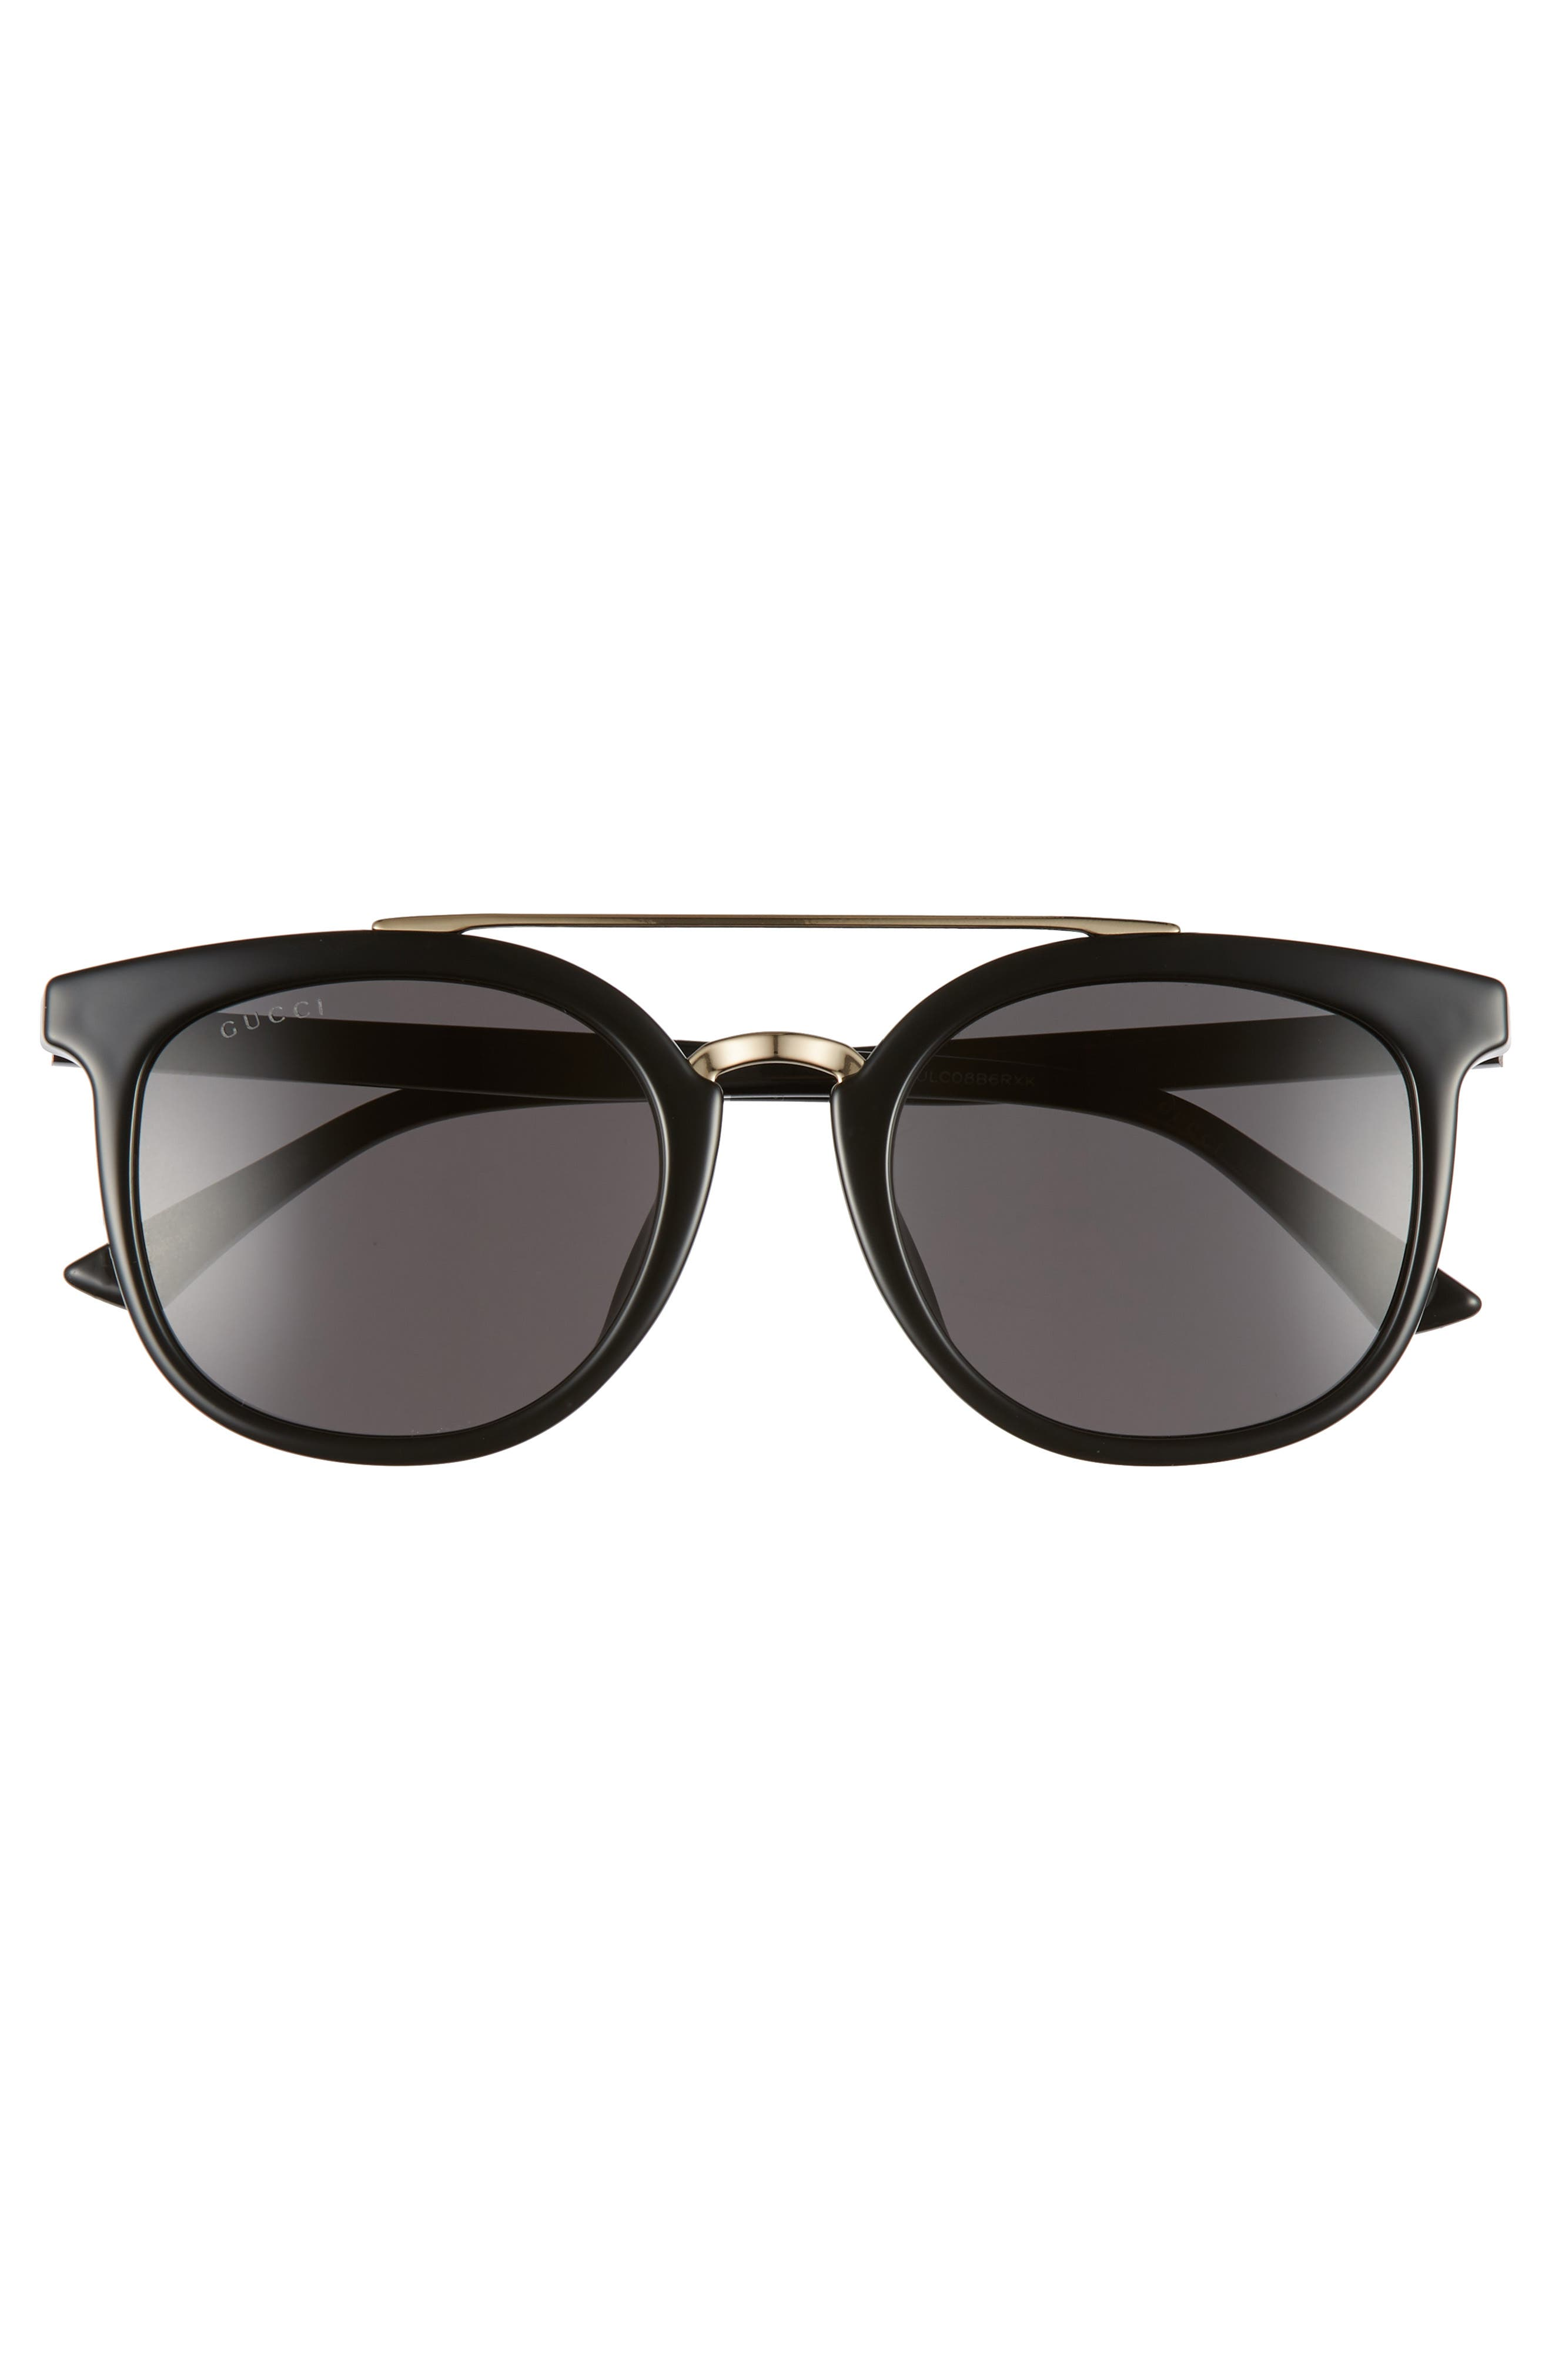 GUCCI, 52mm Round Sunglasses, Alternate thumbnail 2, color, BLACK/ GREY